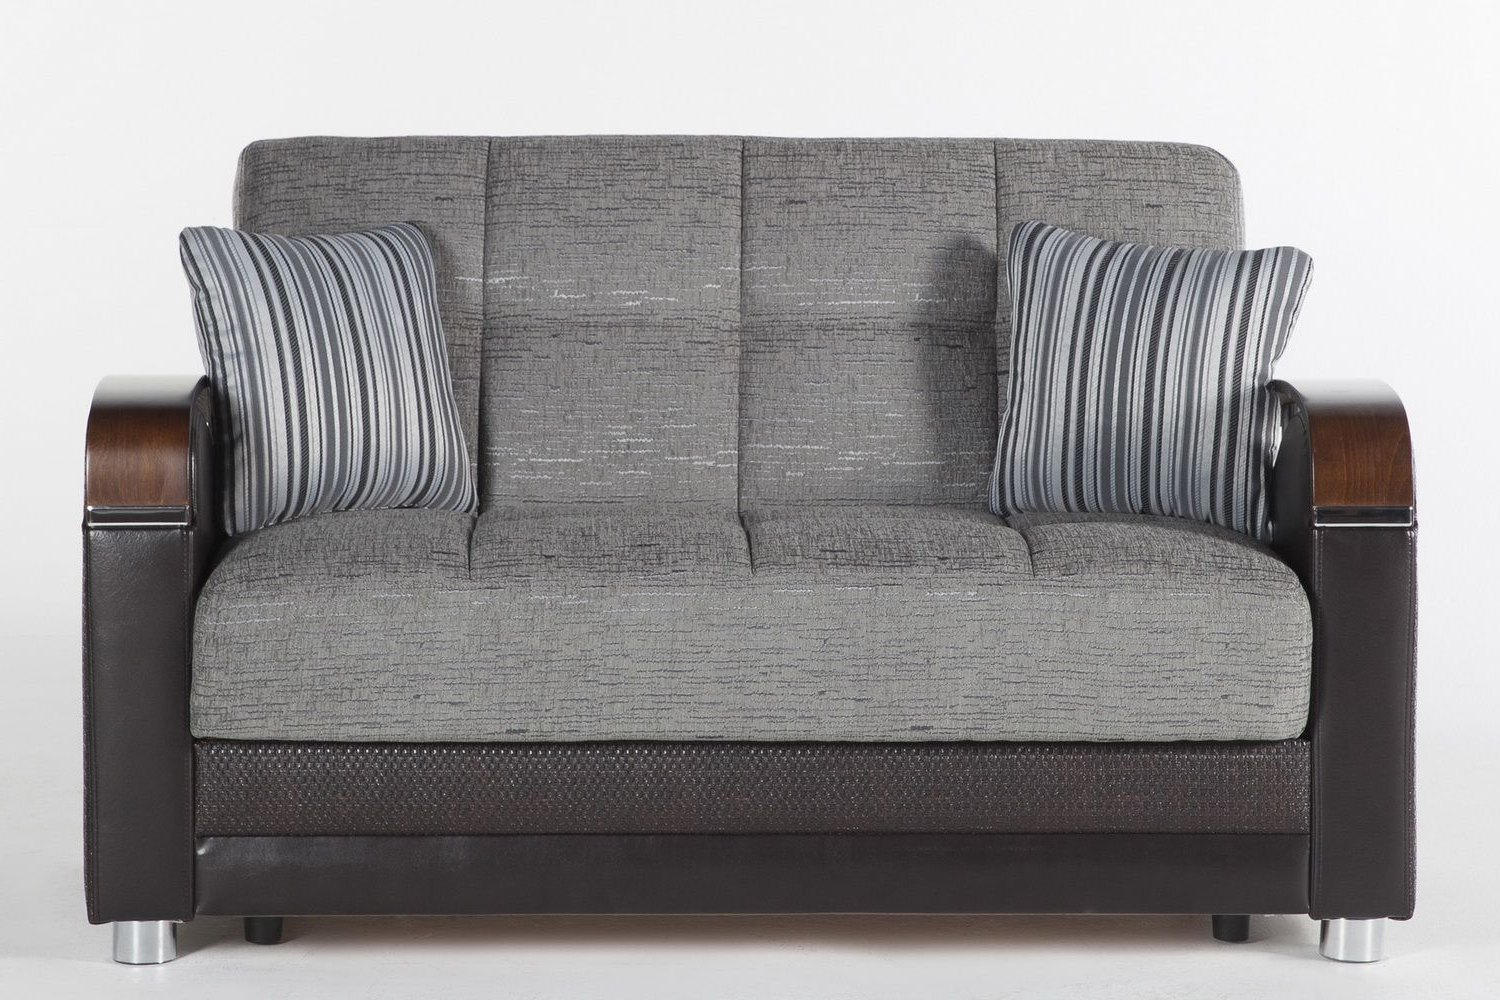 Love Seat Throughout Luna Leather Sectional Sofas (View 19 of 25)